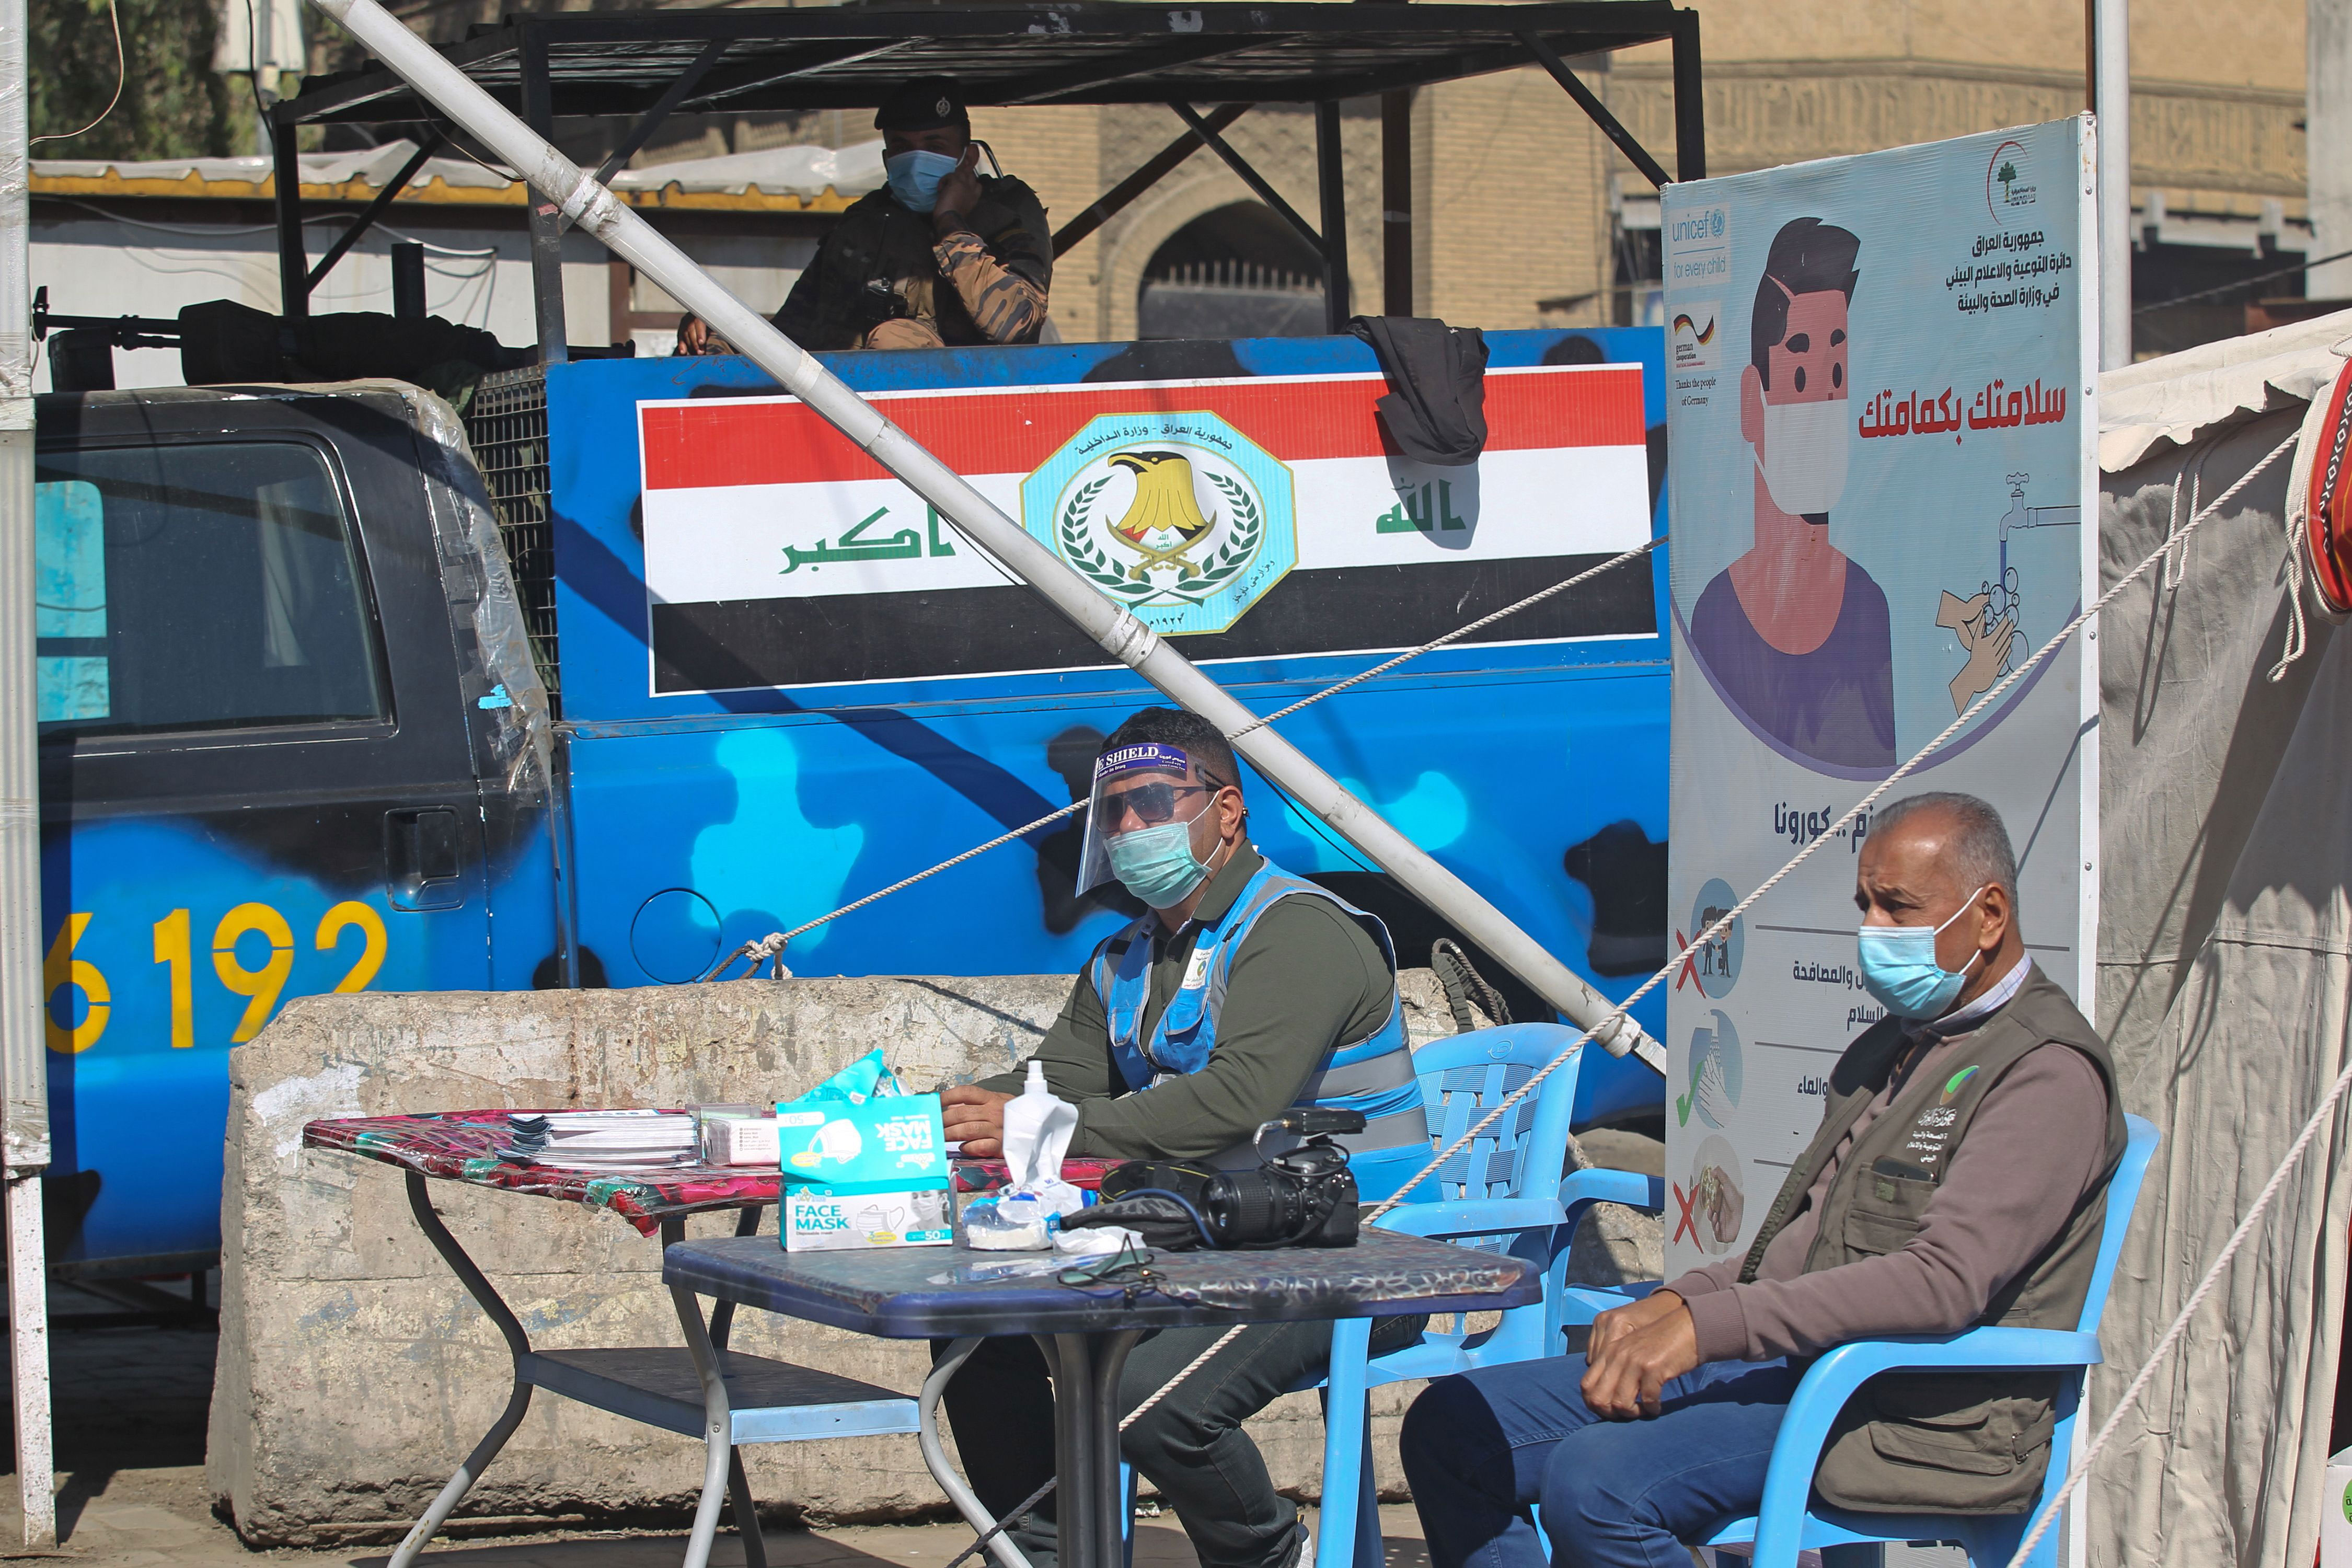 Health workers in Iraq set up a mobile Covid-19 testing unit at Baghdad's Shorja market on February 22.